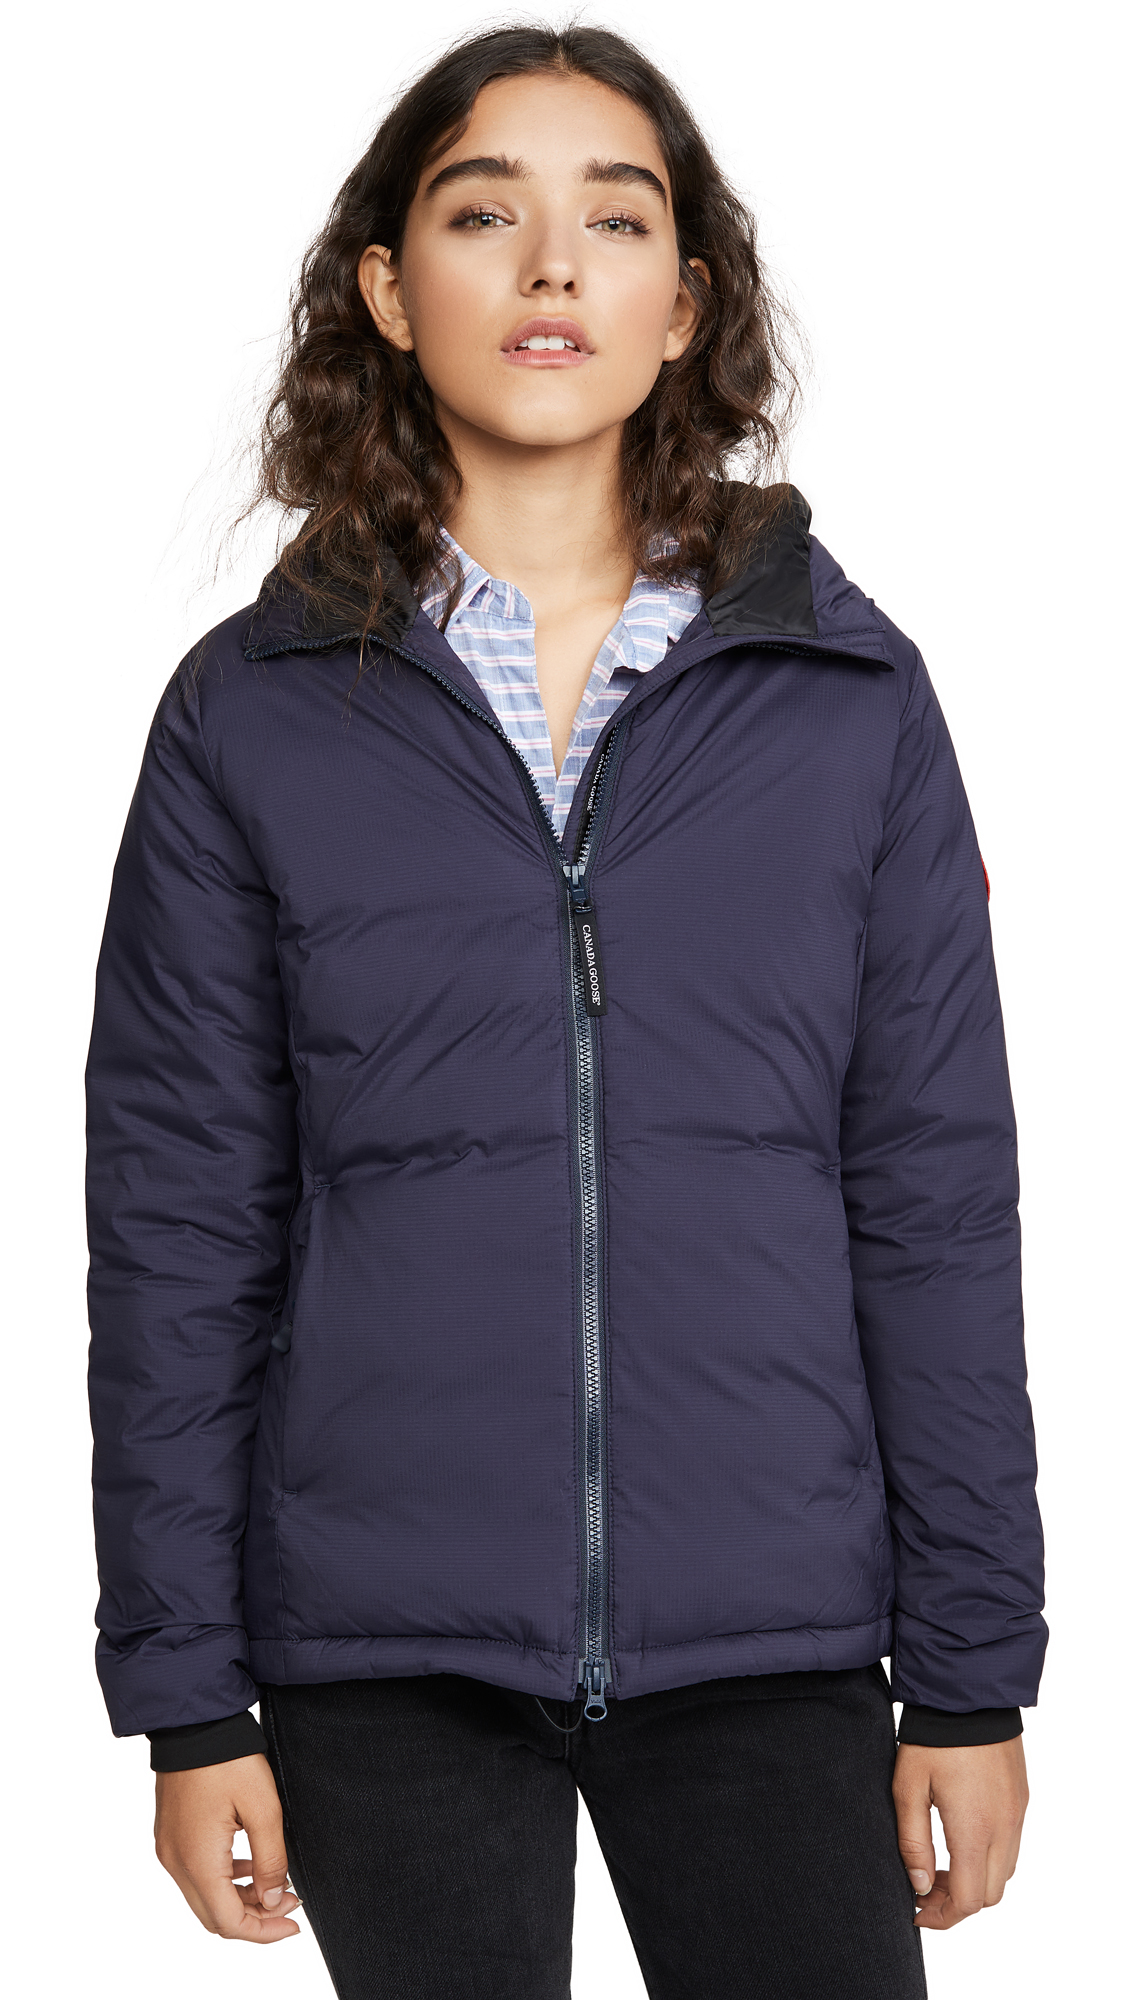 Buy Canada Goose Camp Hoody online beautiful Canada Goose Jackets, Coats, Down Jackets